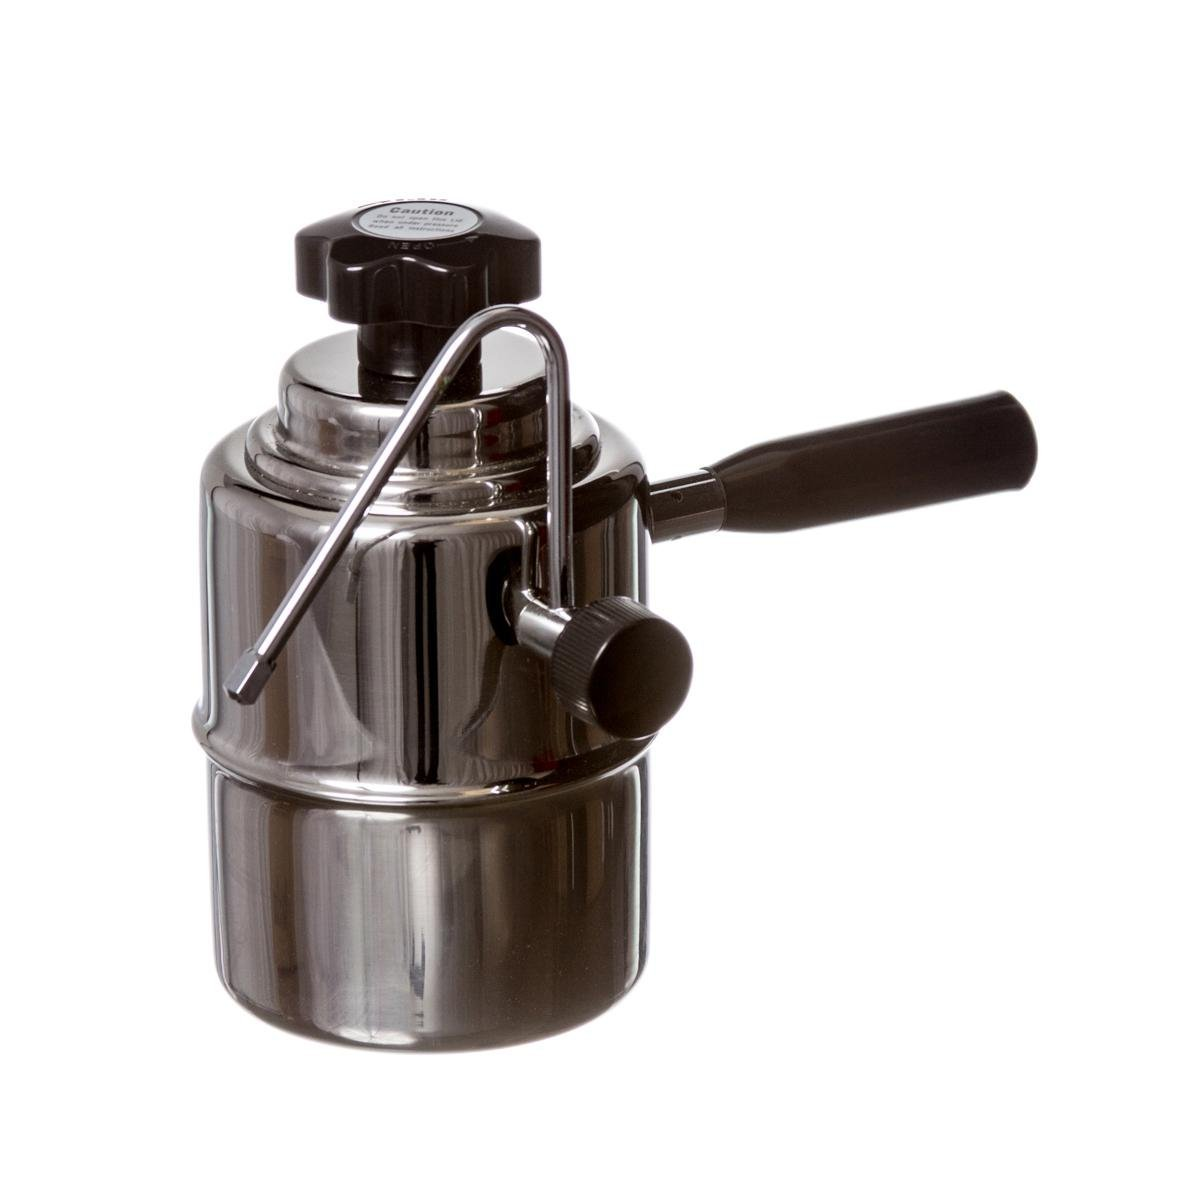 Stovetop Cappuccino Frother Steamer